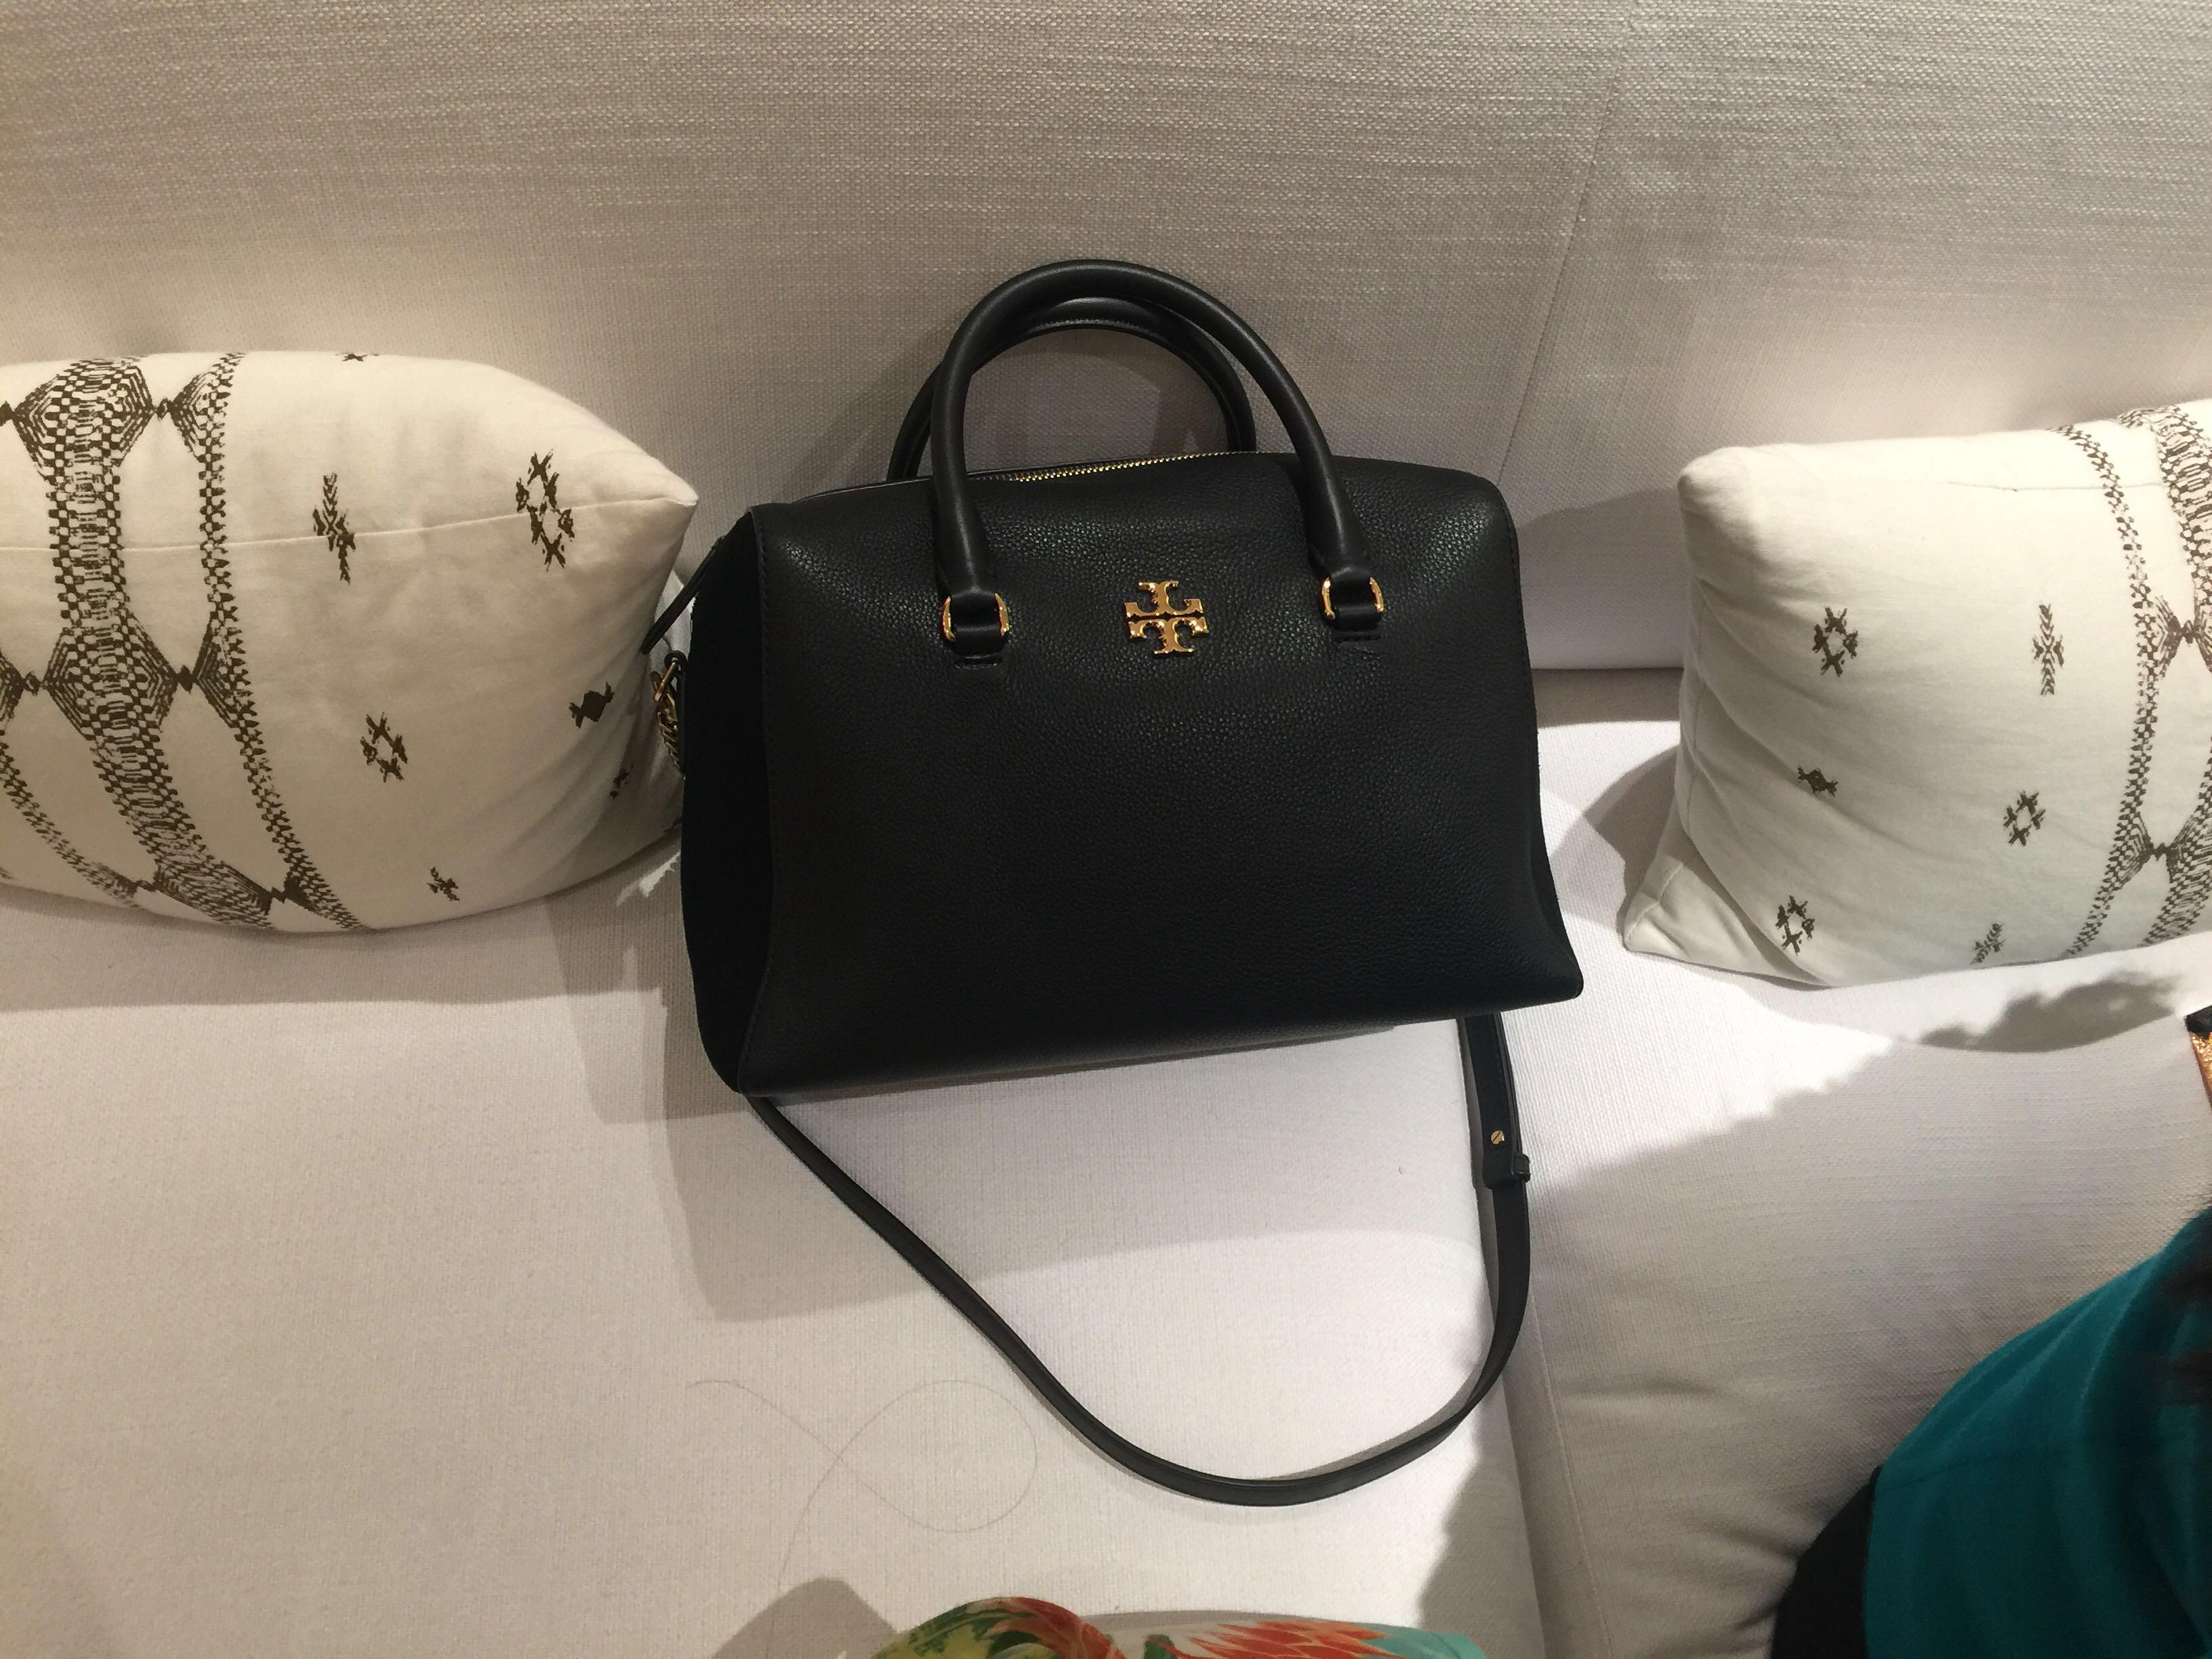 Tory Burch medium Kira tote bag BRAND NEW with original package and receipt